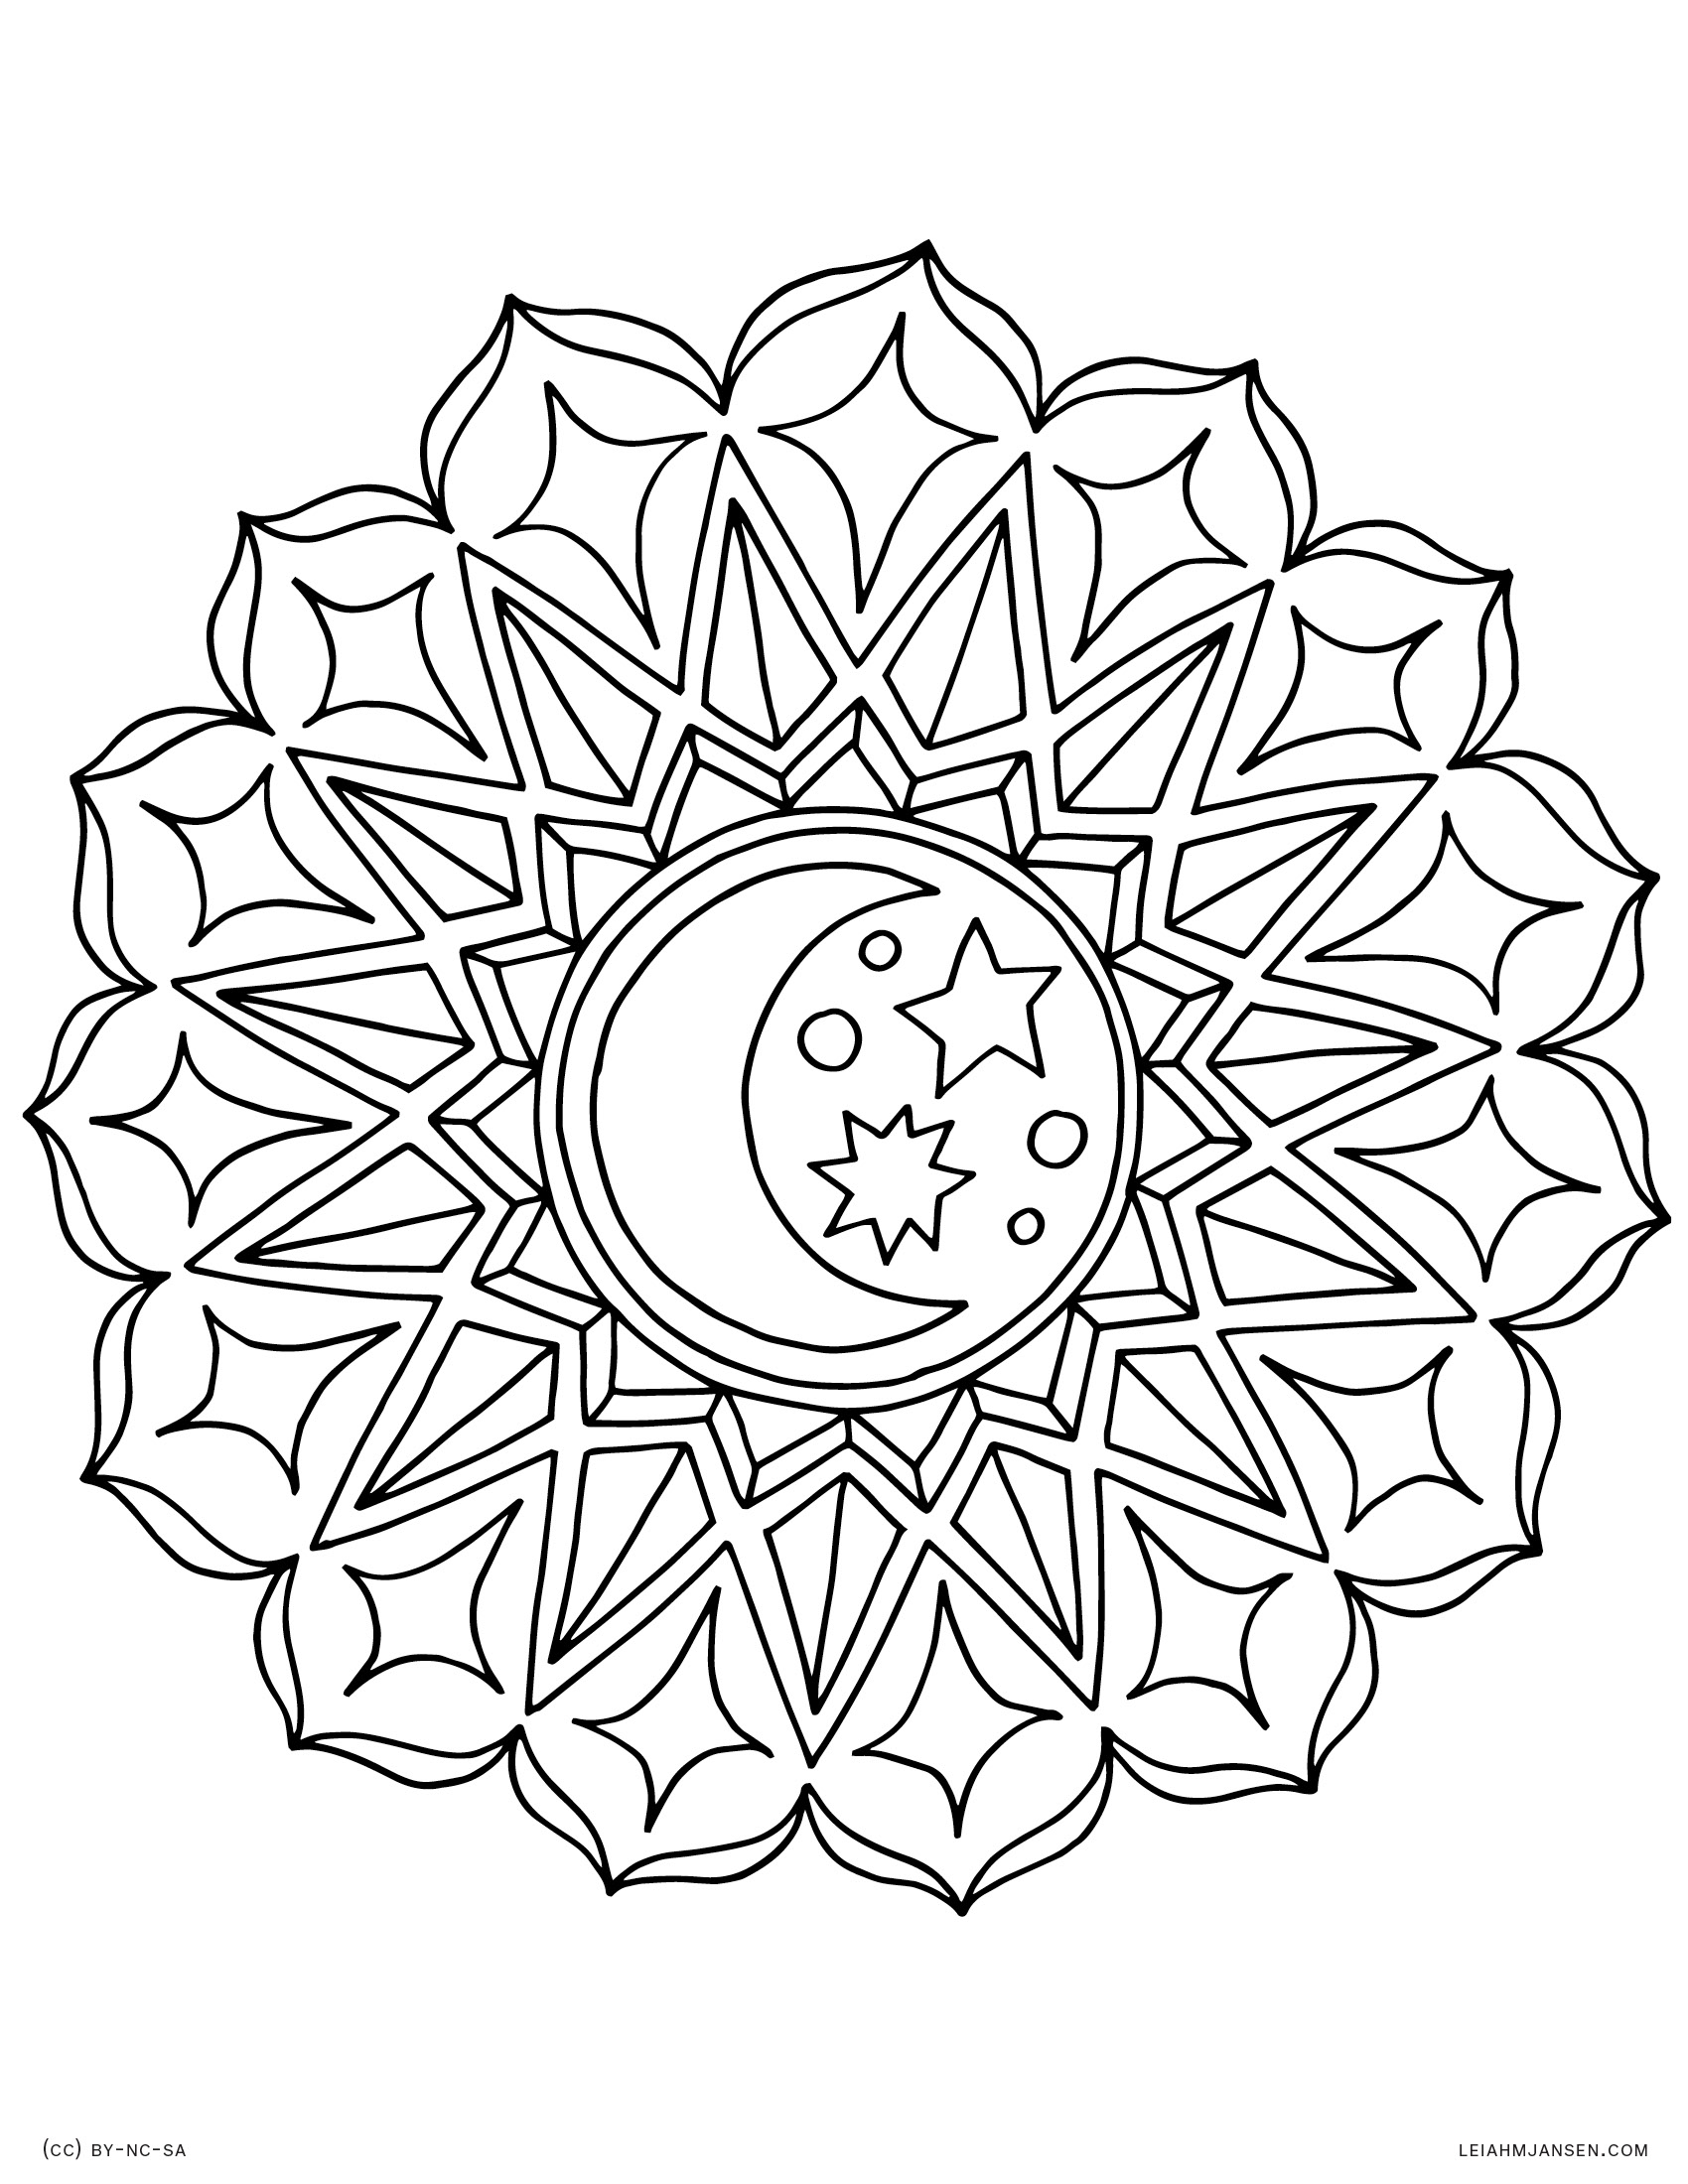 moon mandala coloring pages - coloring pages